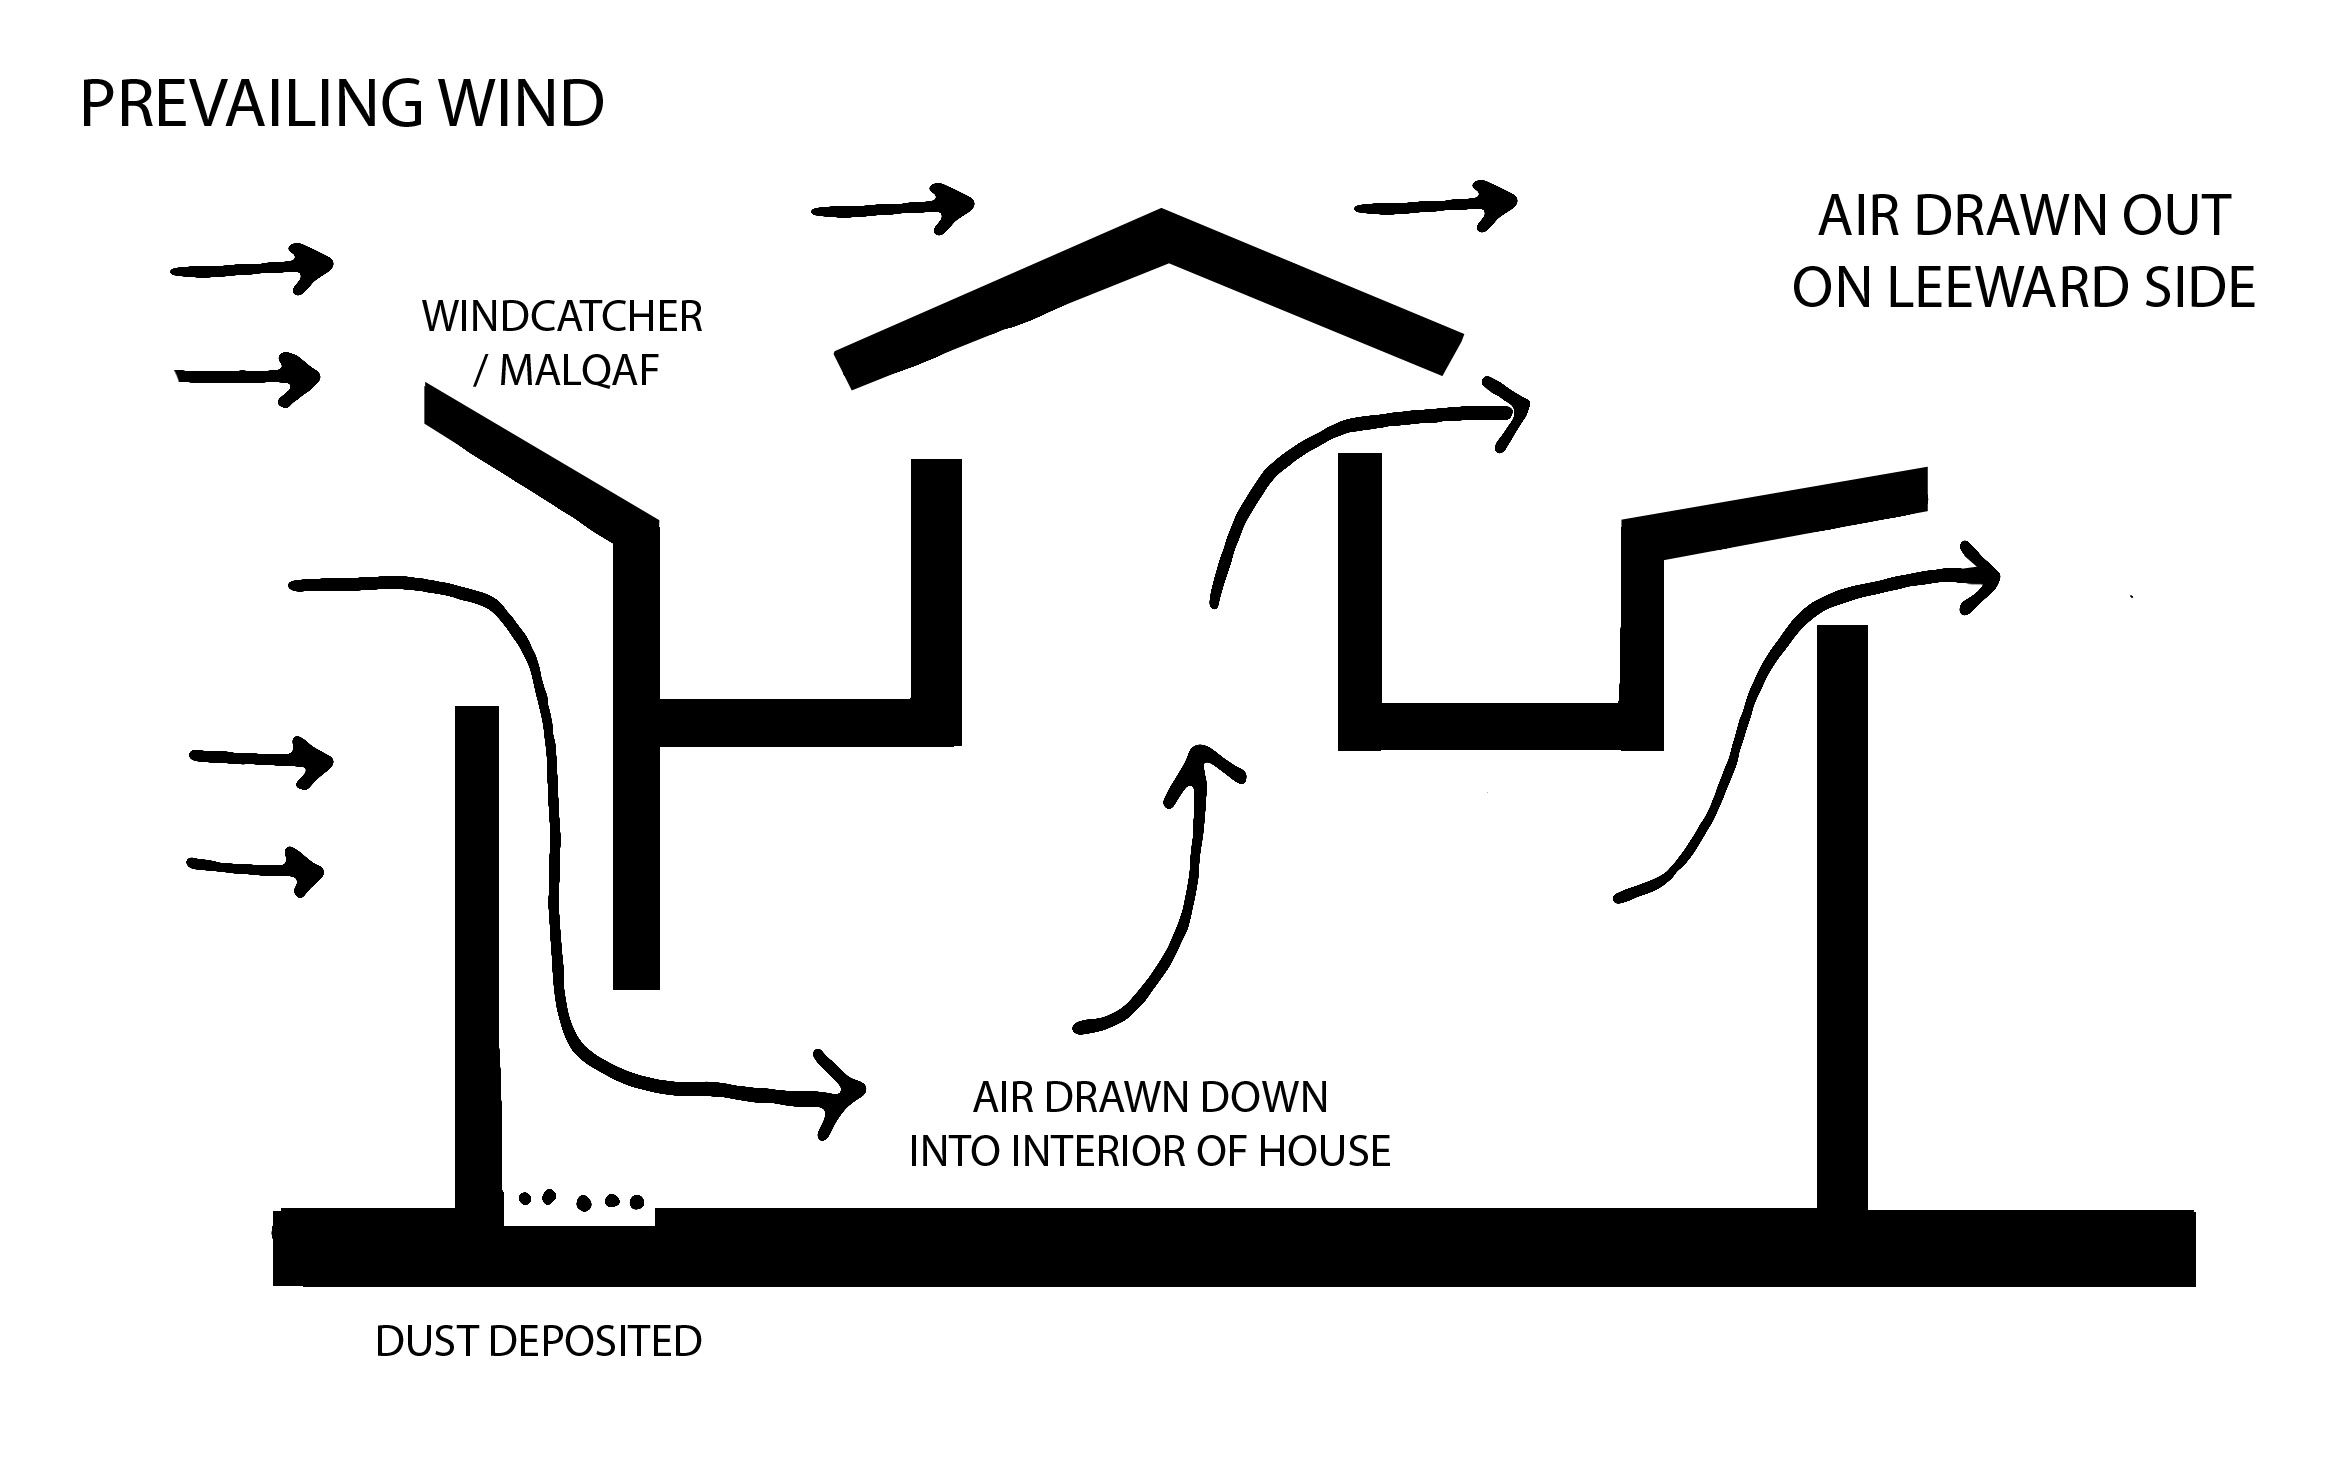 Passive cooling technique a wind catcher also called a bâdgir or malqaf is a cooling tower that can bring interior temperatures down either by d